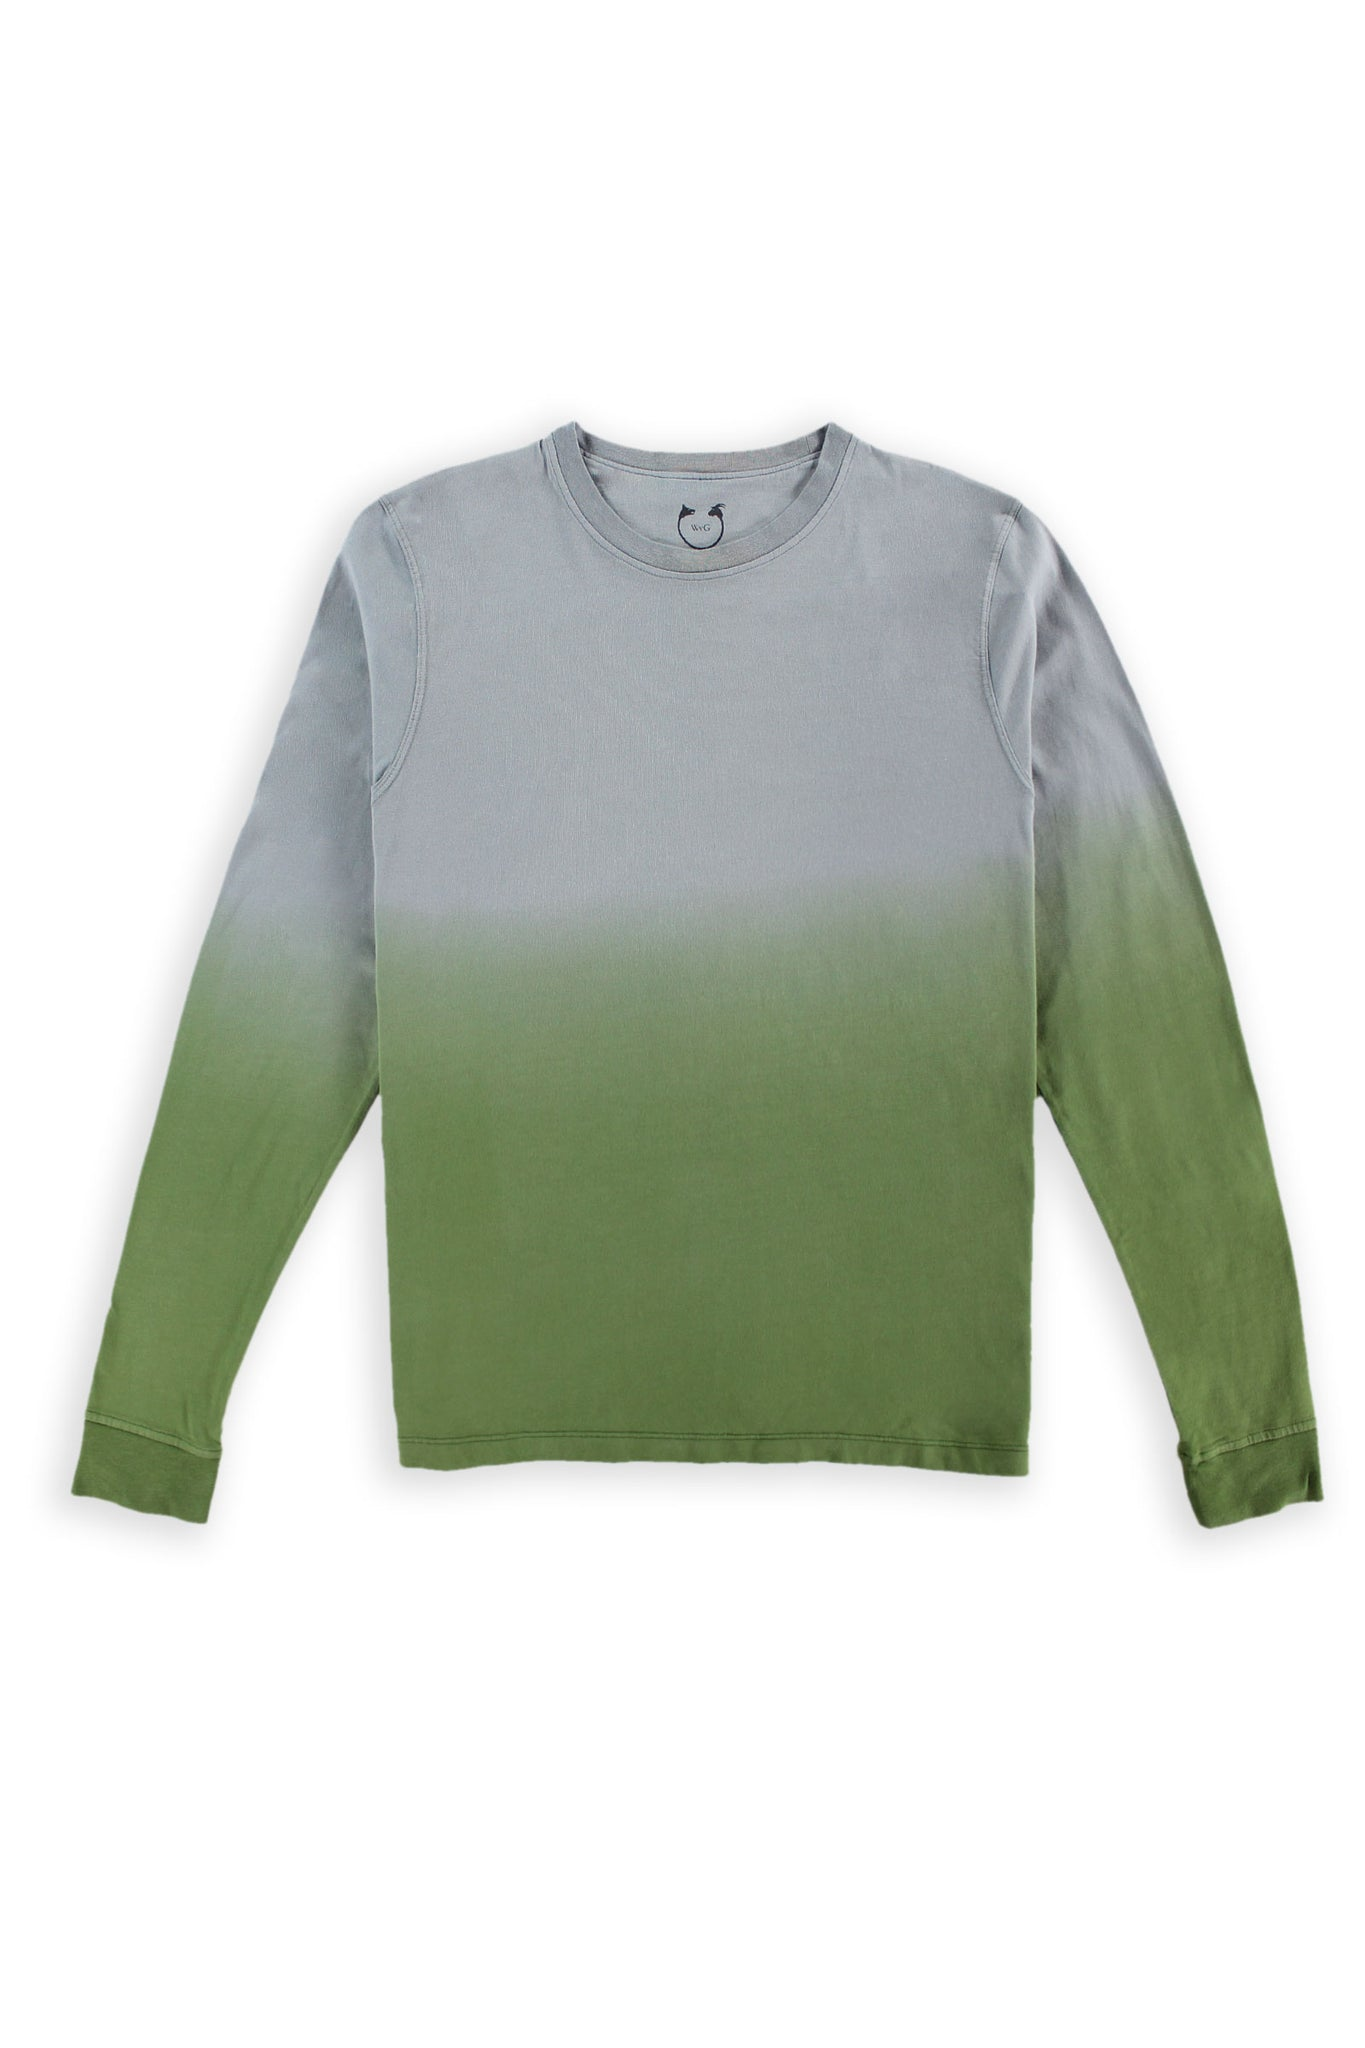 Long Sleeve Crew Neck Organic Cotton Modal Tee Gray Ombré